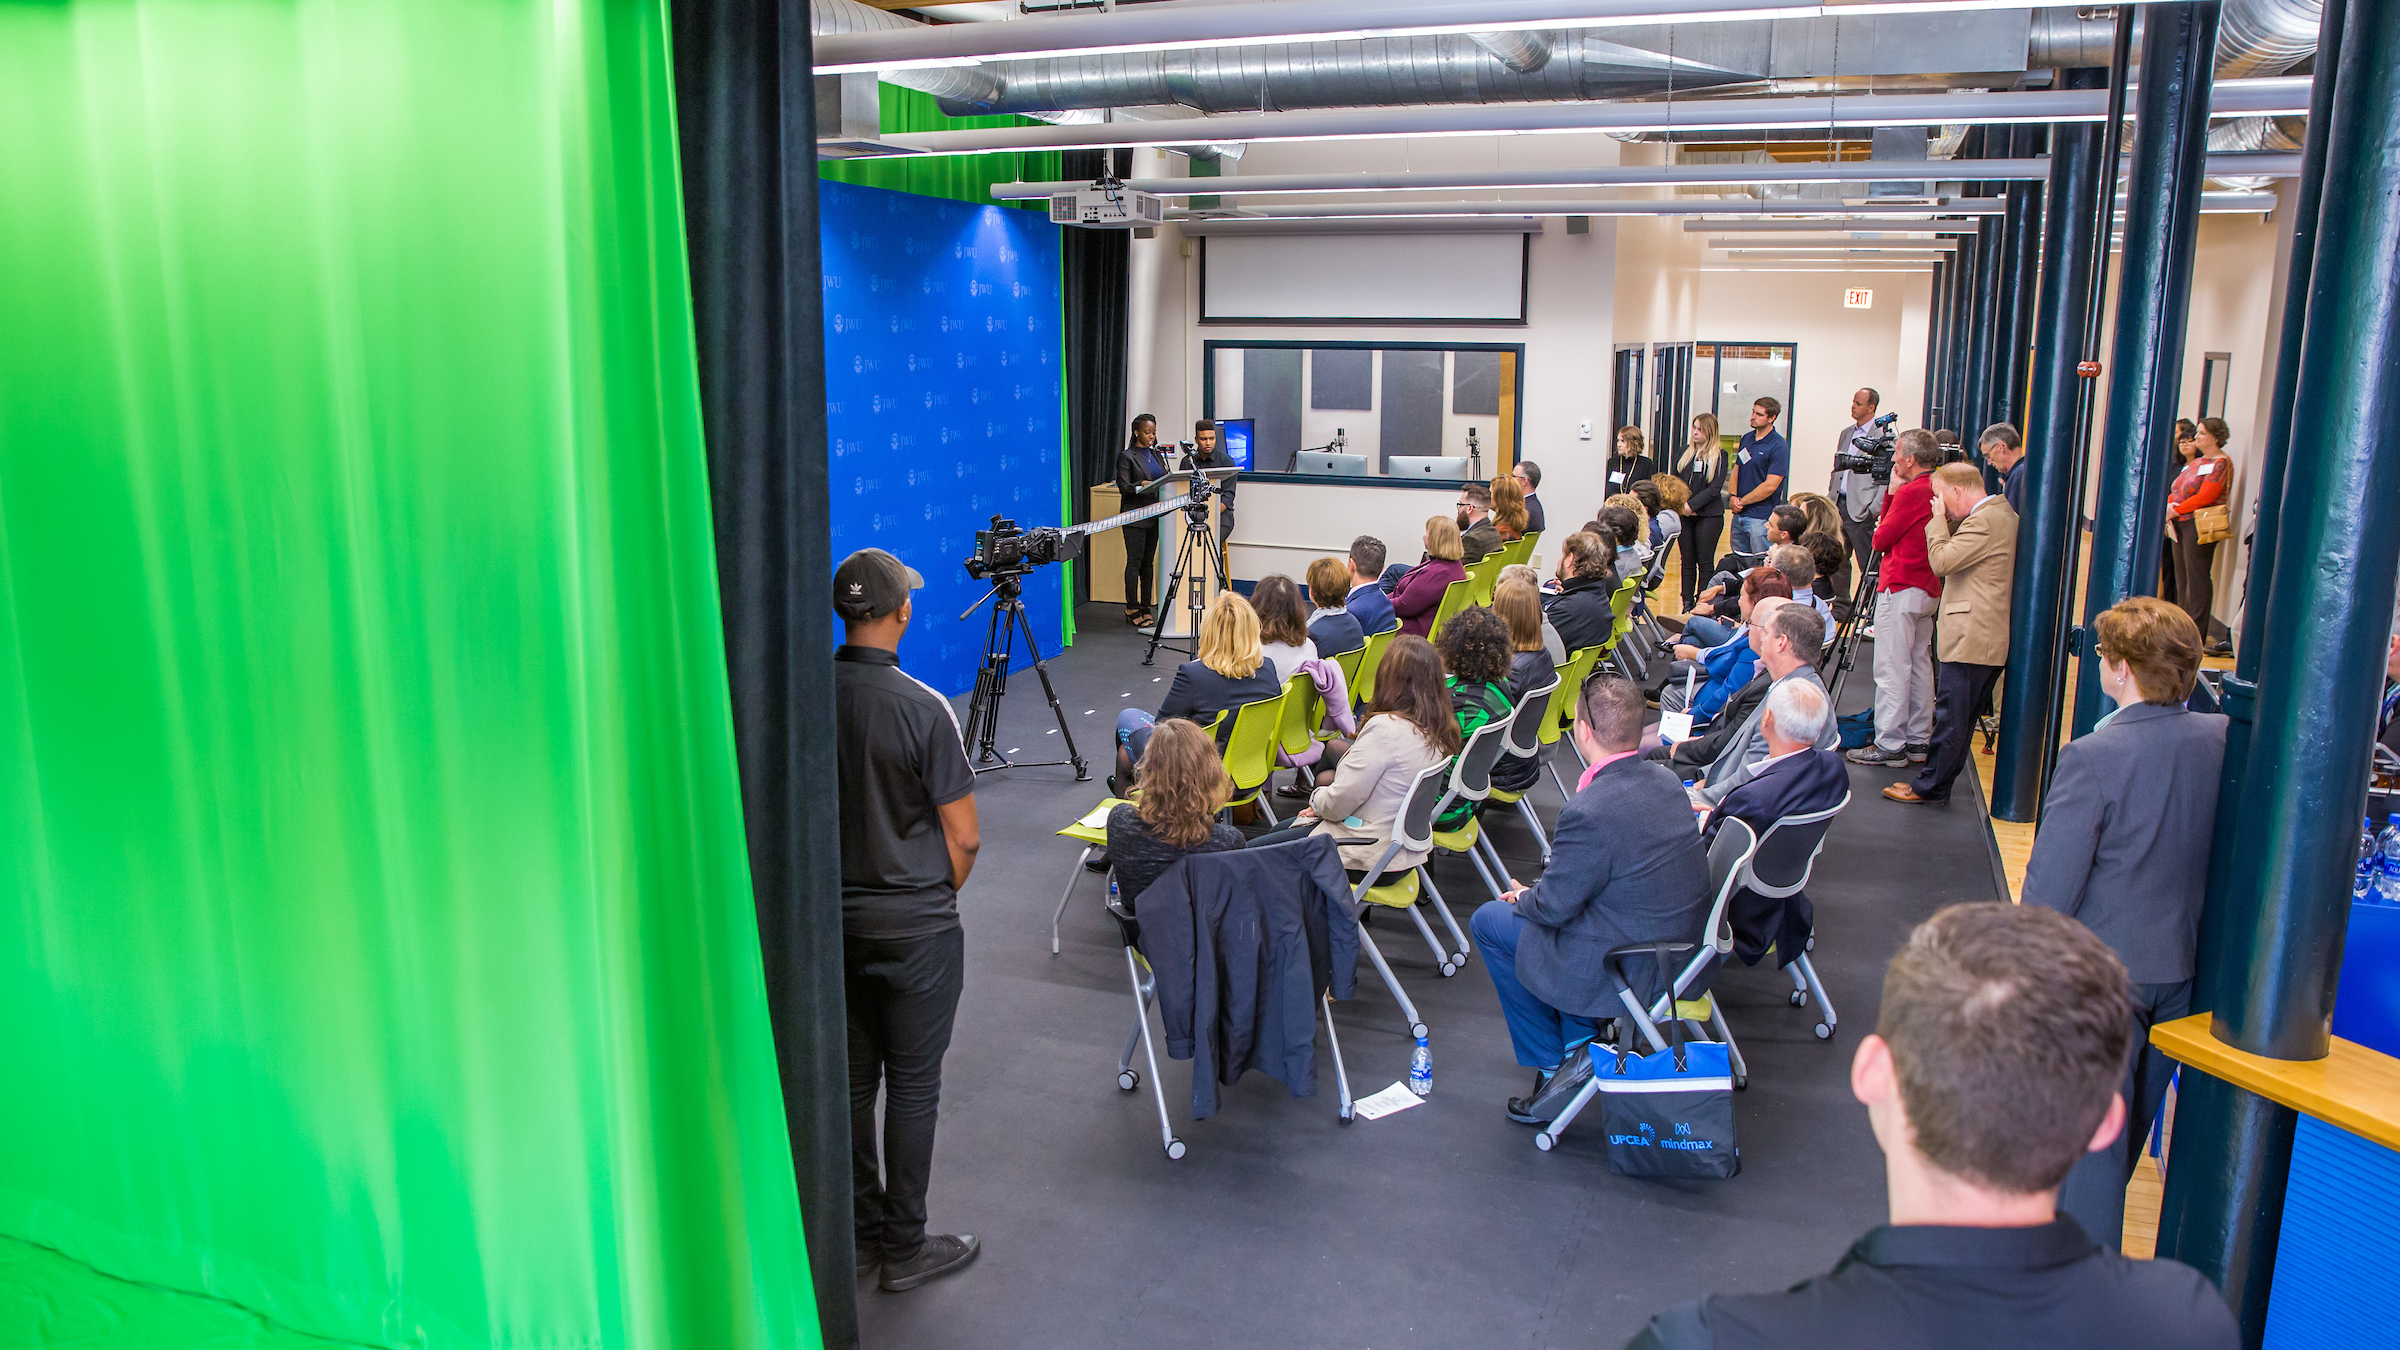 20191004_CenterForMediaProduction-Opening-5I0A4200.jpg